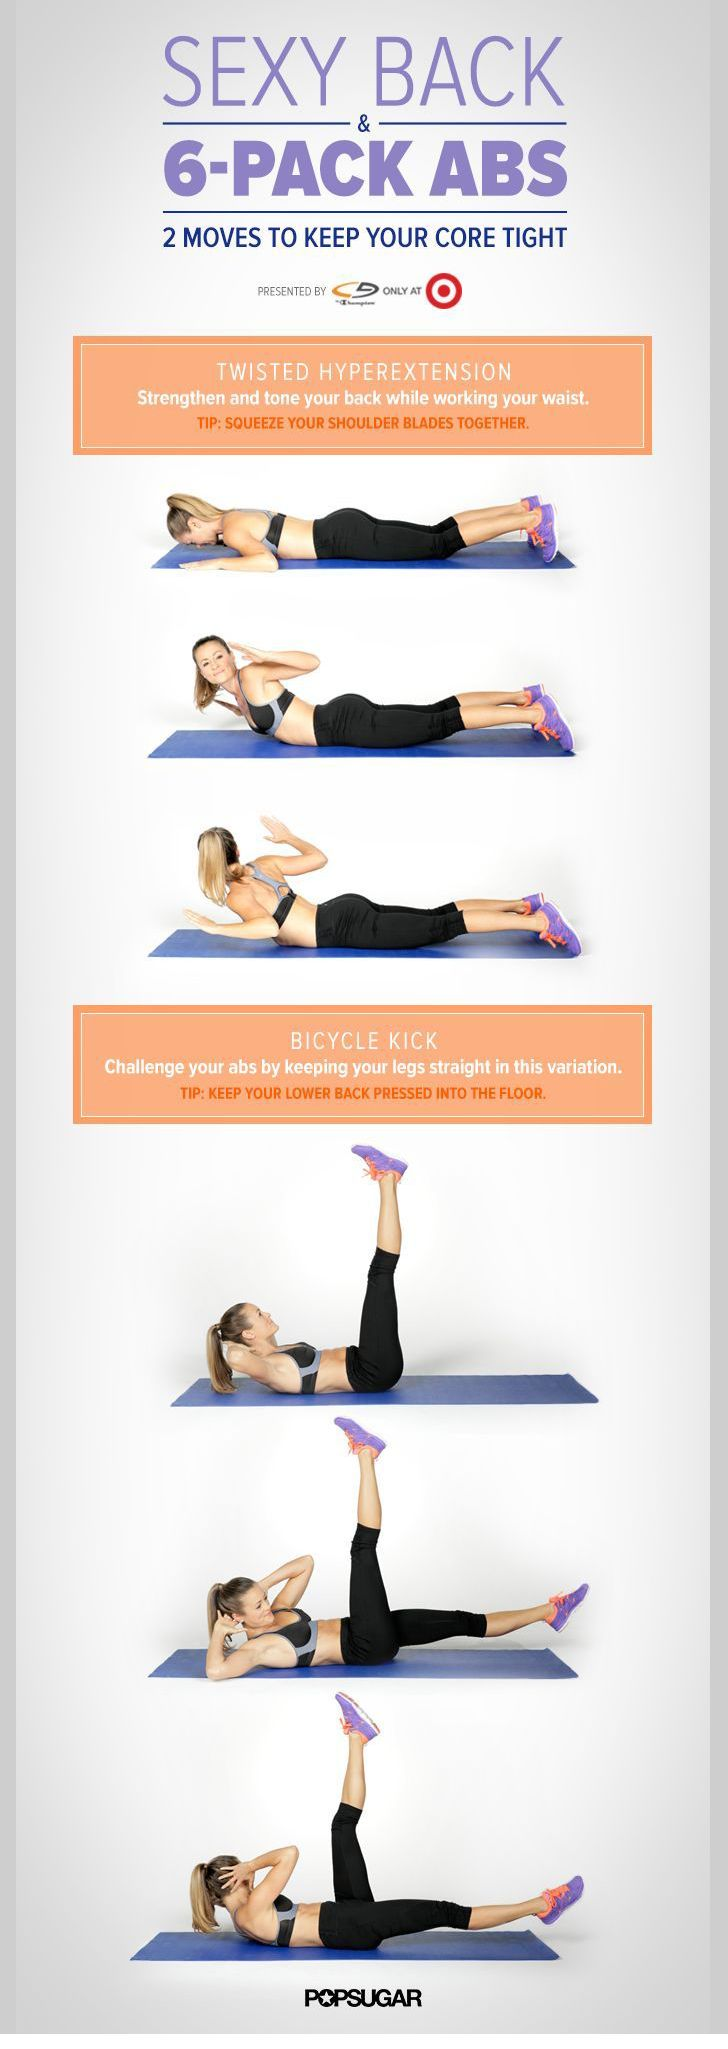 Get Six Pack Abs Anywhere!